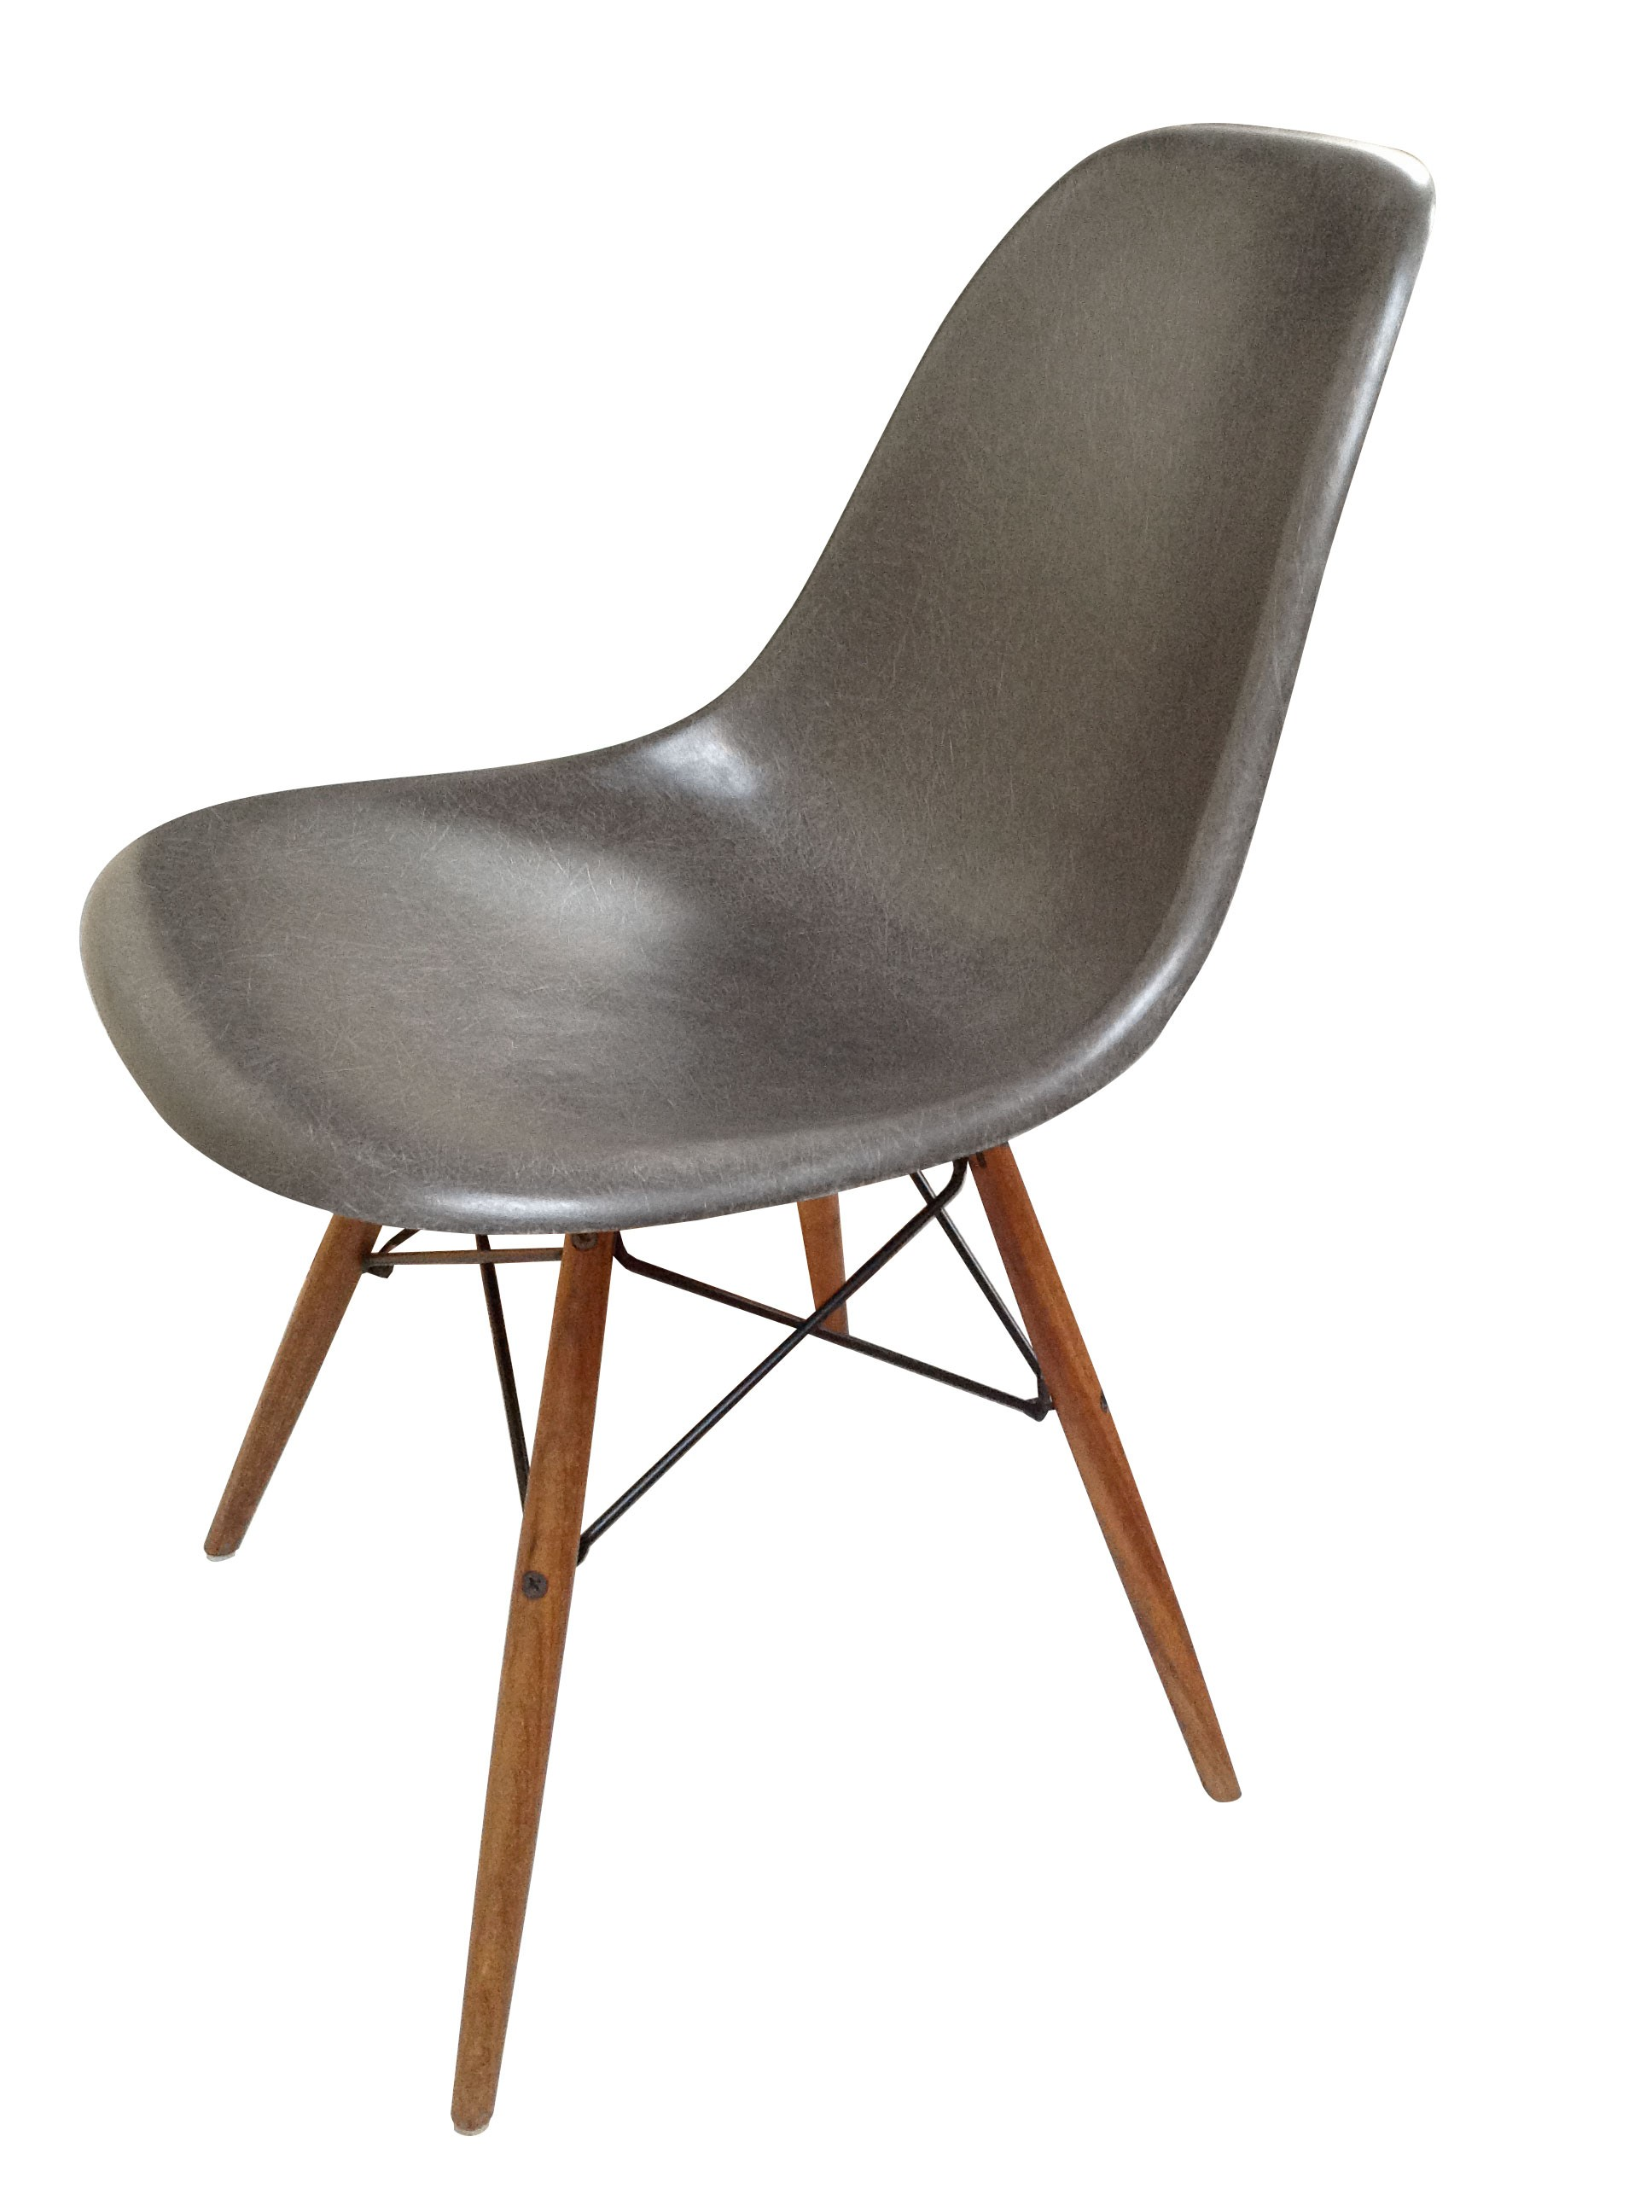 Charles ray eames chaise lounge chair by charles ray for Chaise eames vitra dsw